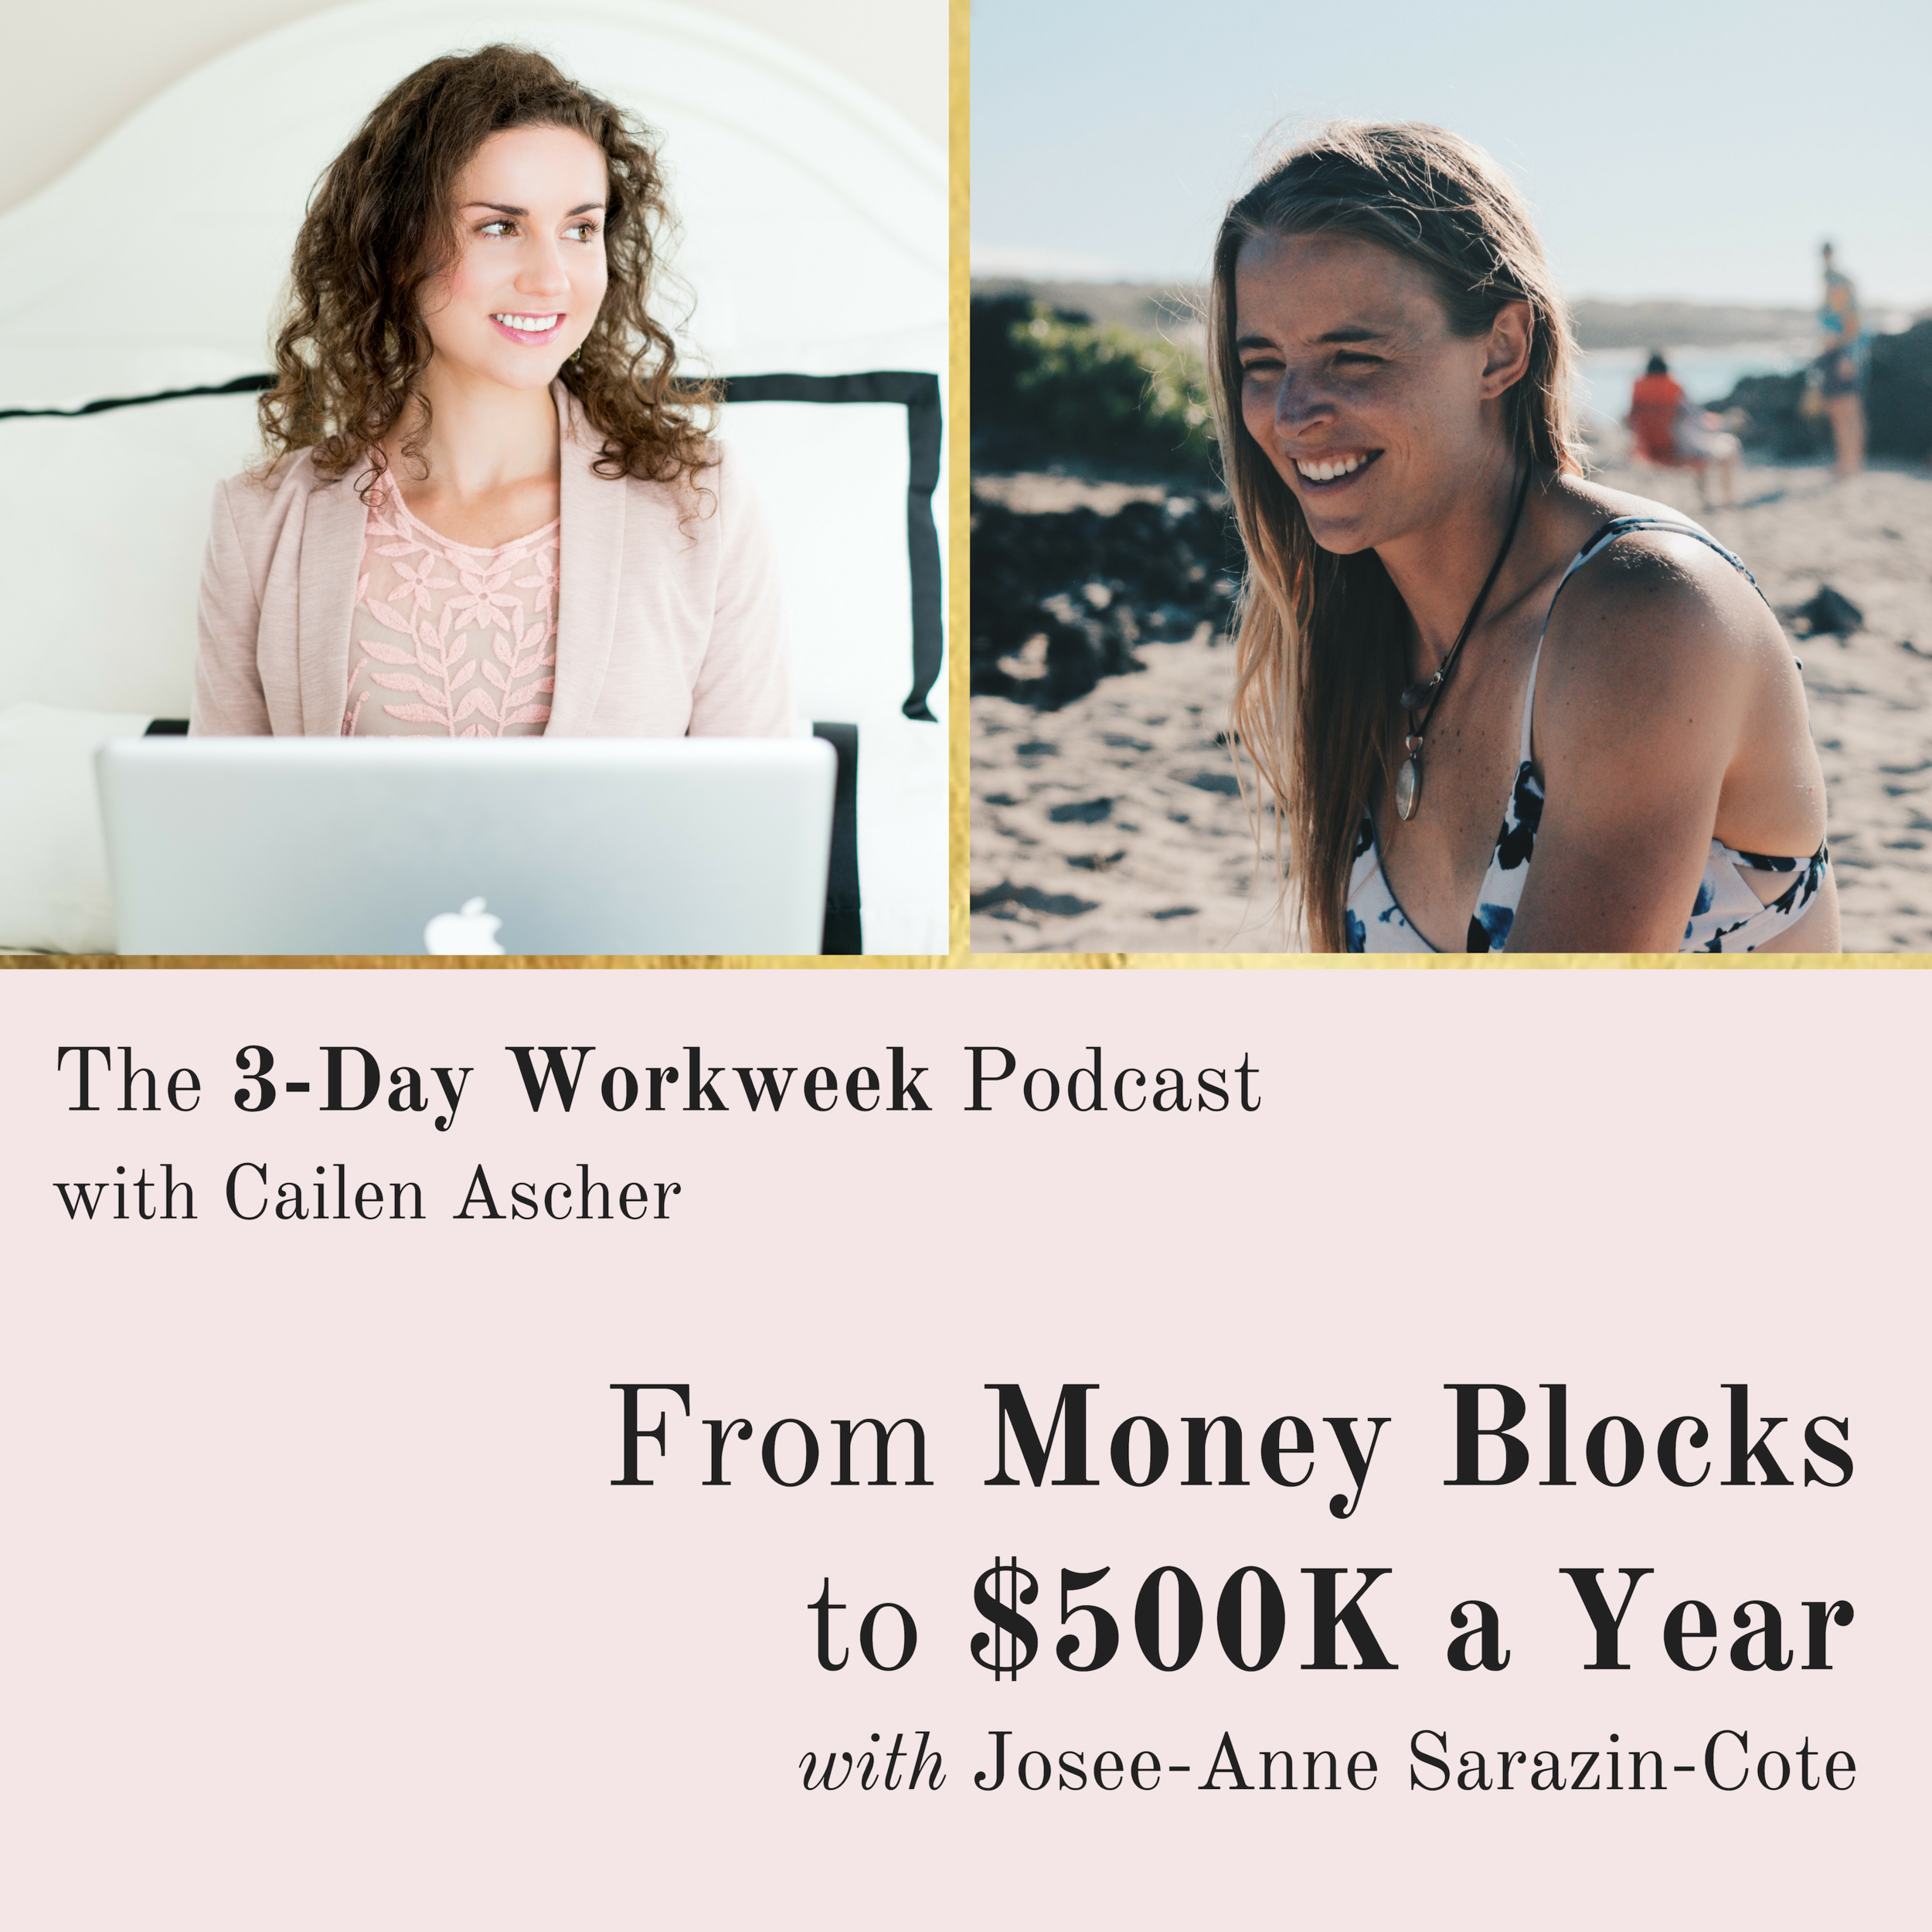 The 3-Day Workweek Podcast with Cailen Ascher - 2018-12-12 - From Money Blocks to $500K a Year with Josee-Anne.png